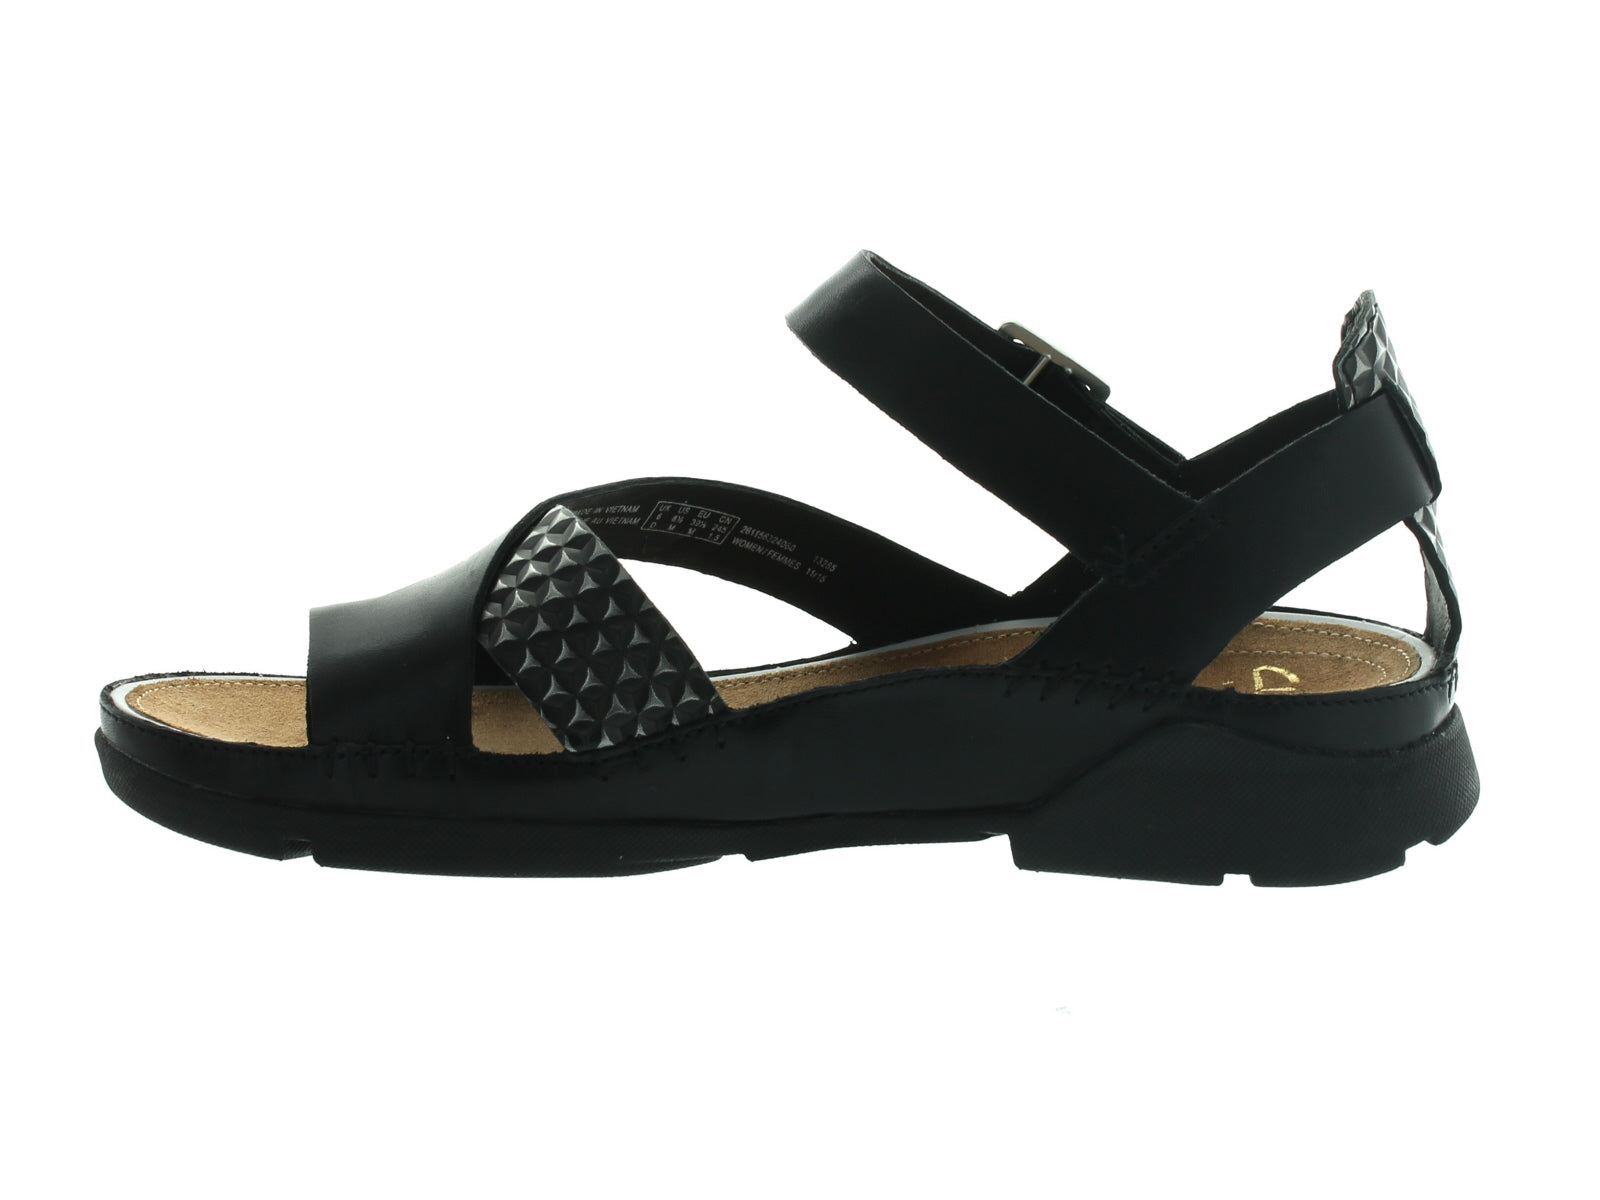 Clarks Tri Ariana in Black Combi inner view